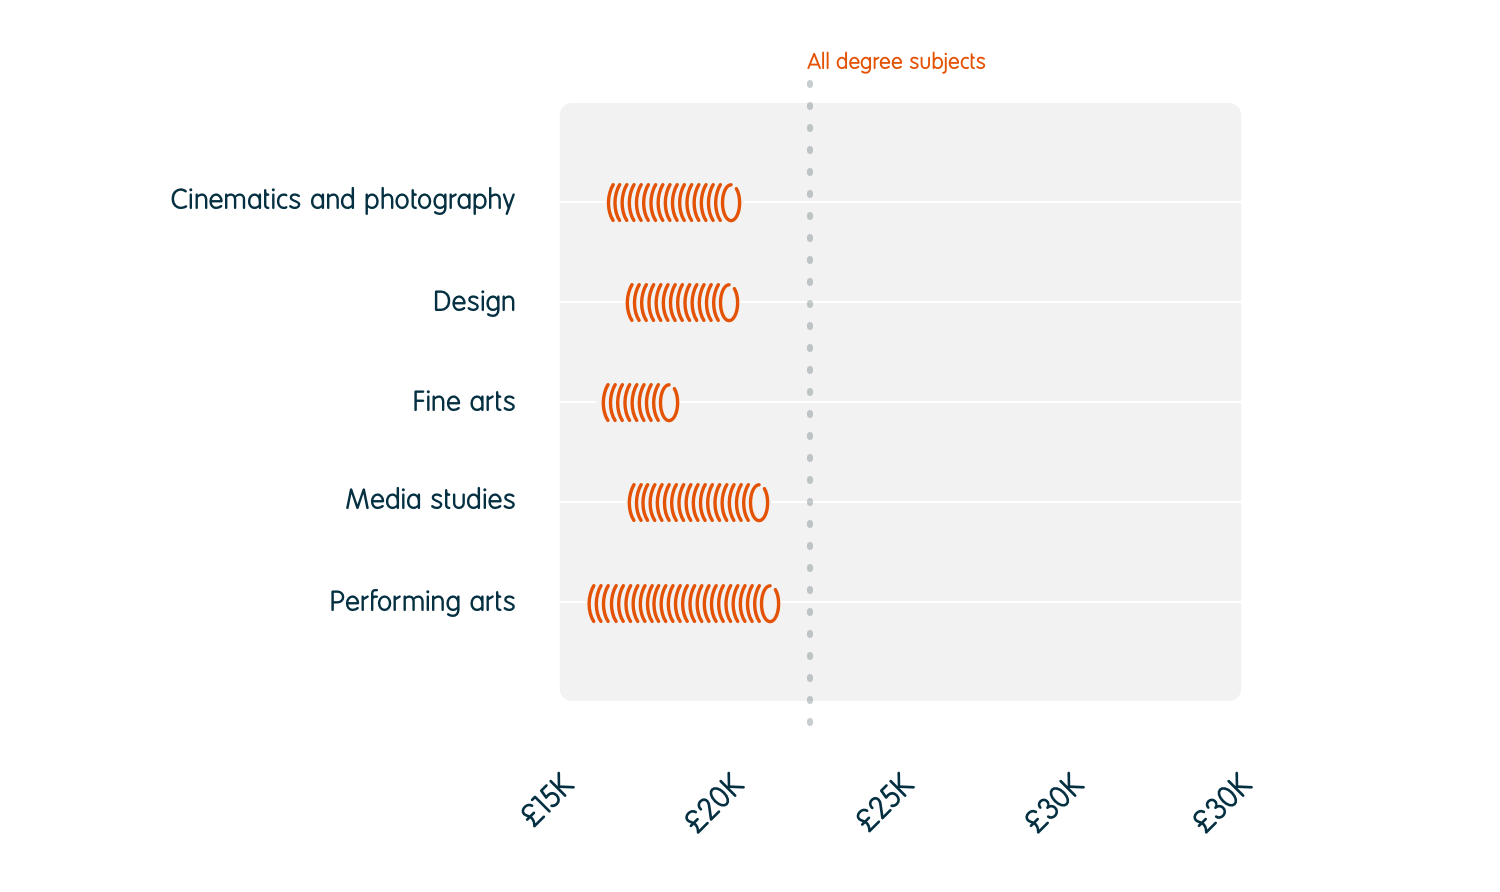 The average starting salary for all graduates was £22,399. <br/>Average starting salaries ranged from £16,400 to £20,400 for cinematics and photography graduates, £17,000 to £20,300 for design, £16,100 to £18,500 for fine arts, £17,000 to £21,250 for media studies, and £15,800 to £21,500 for performing arts.